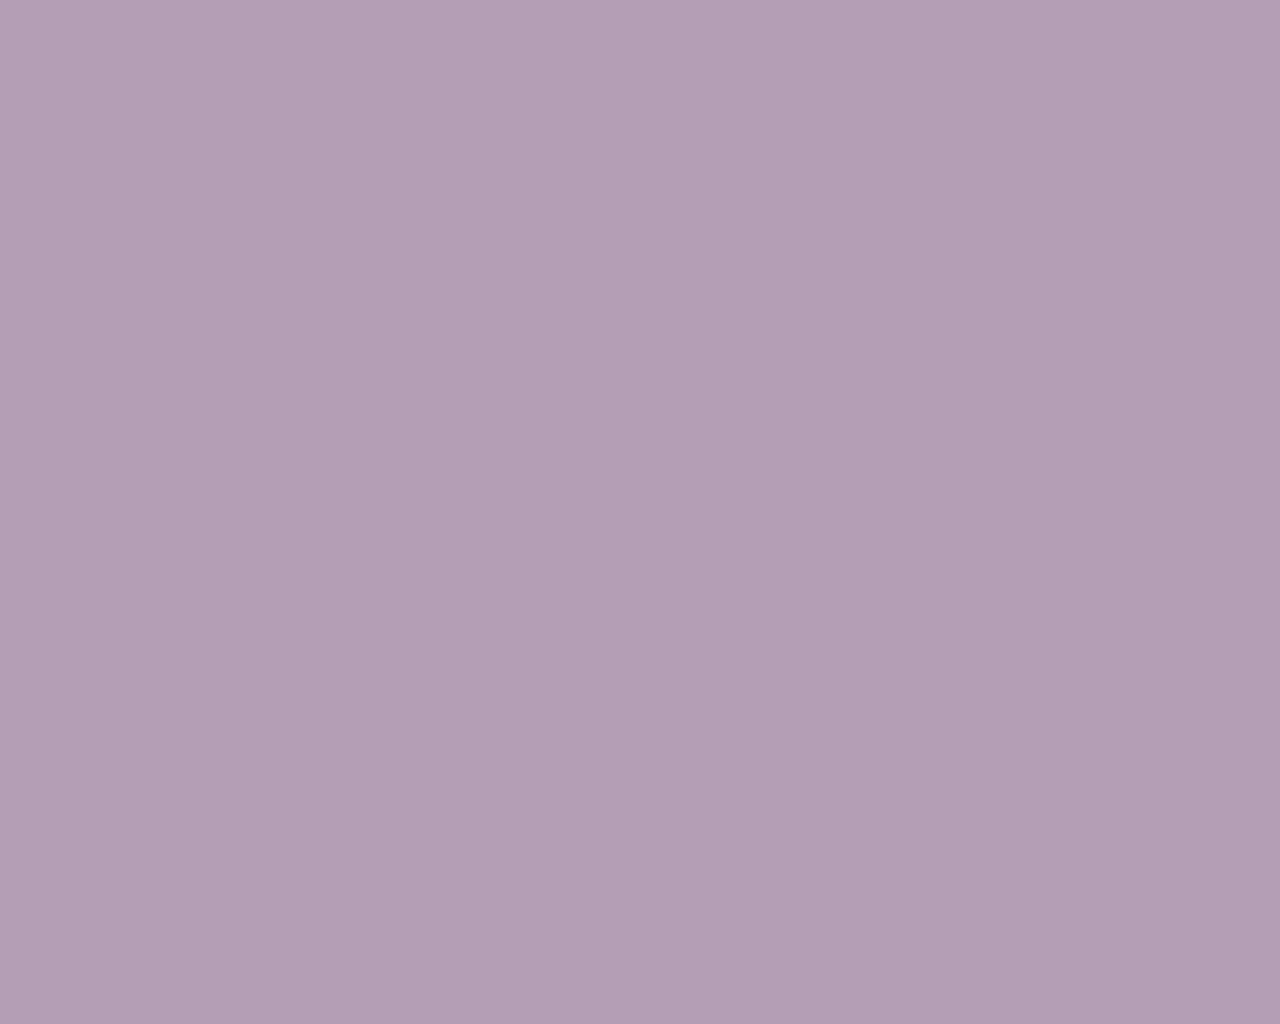 1280x1024 resolution Pastel Purple solid color background view 1280x1024